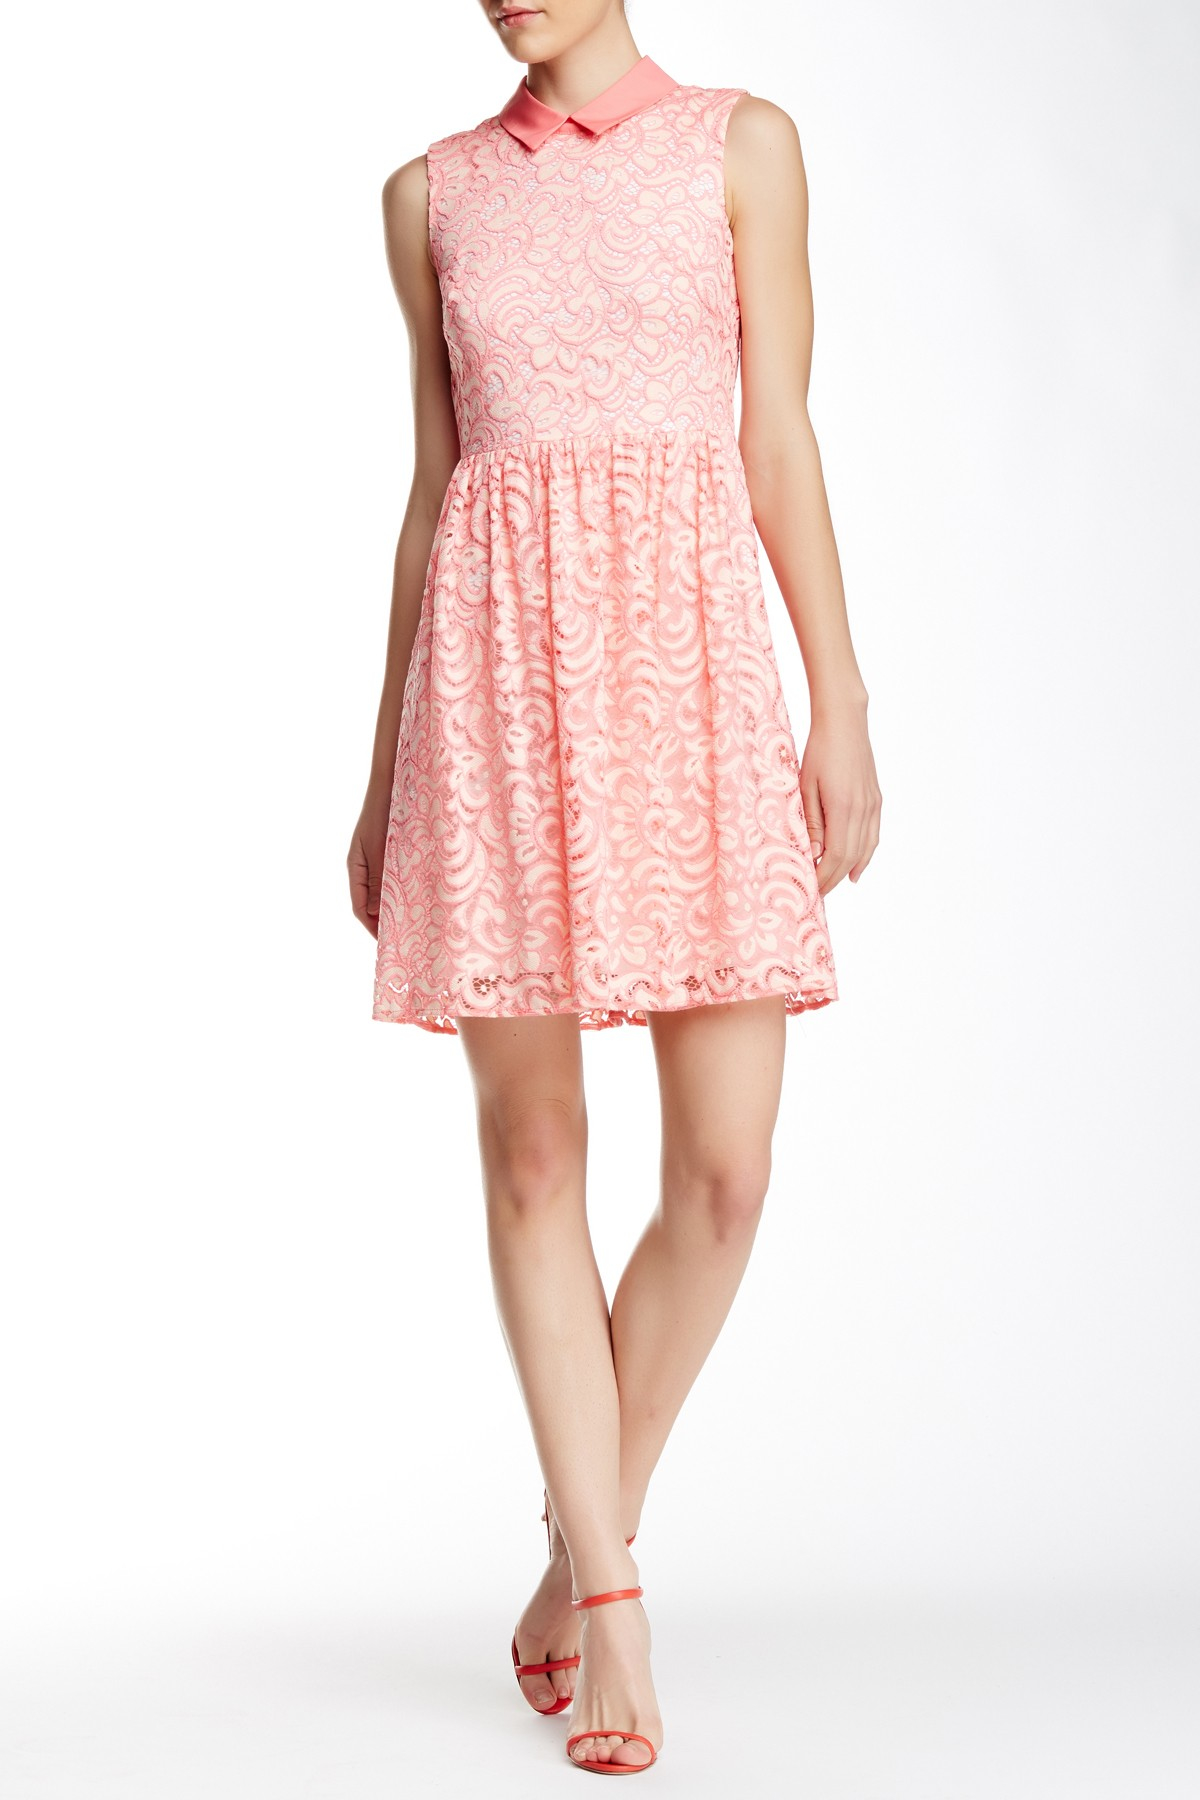 Betsey johnson lace collar dress in pink lyst for Nordstrom rack dresses pour mariage